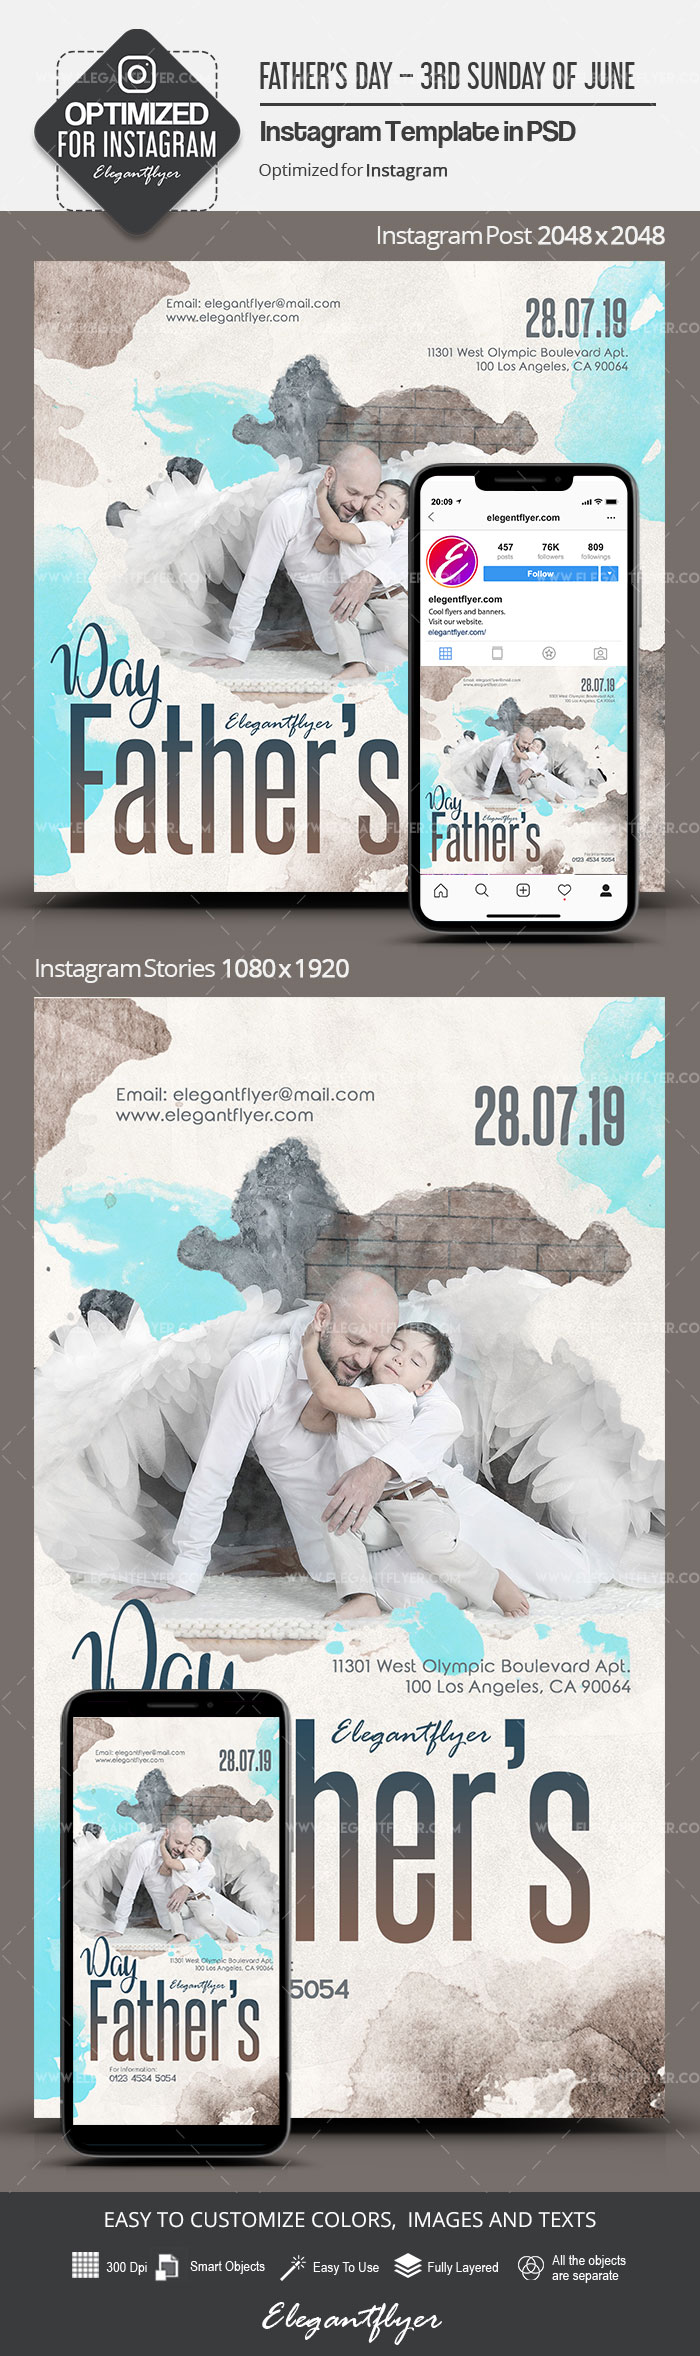 Father's Day – 3rd Sunday of June – Instagram Stories Template in PSD + Post Templates